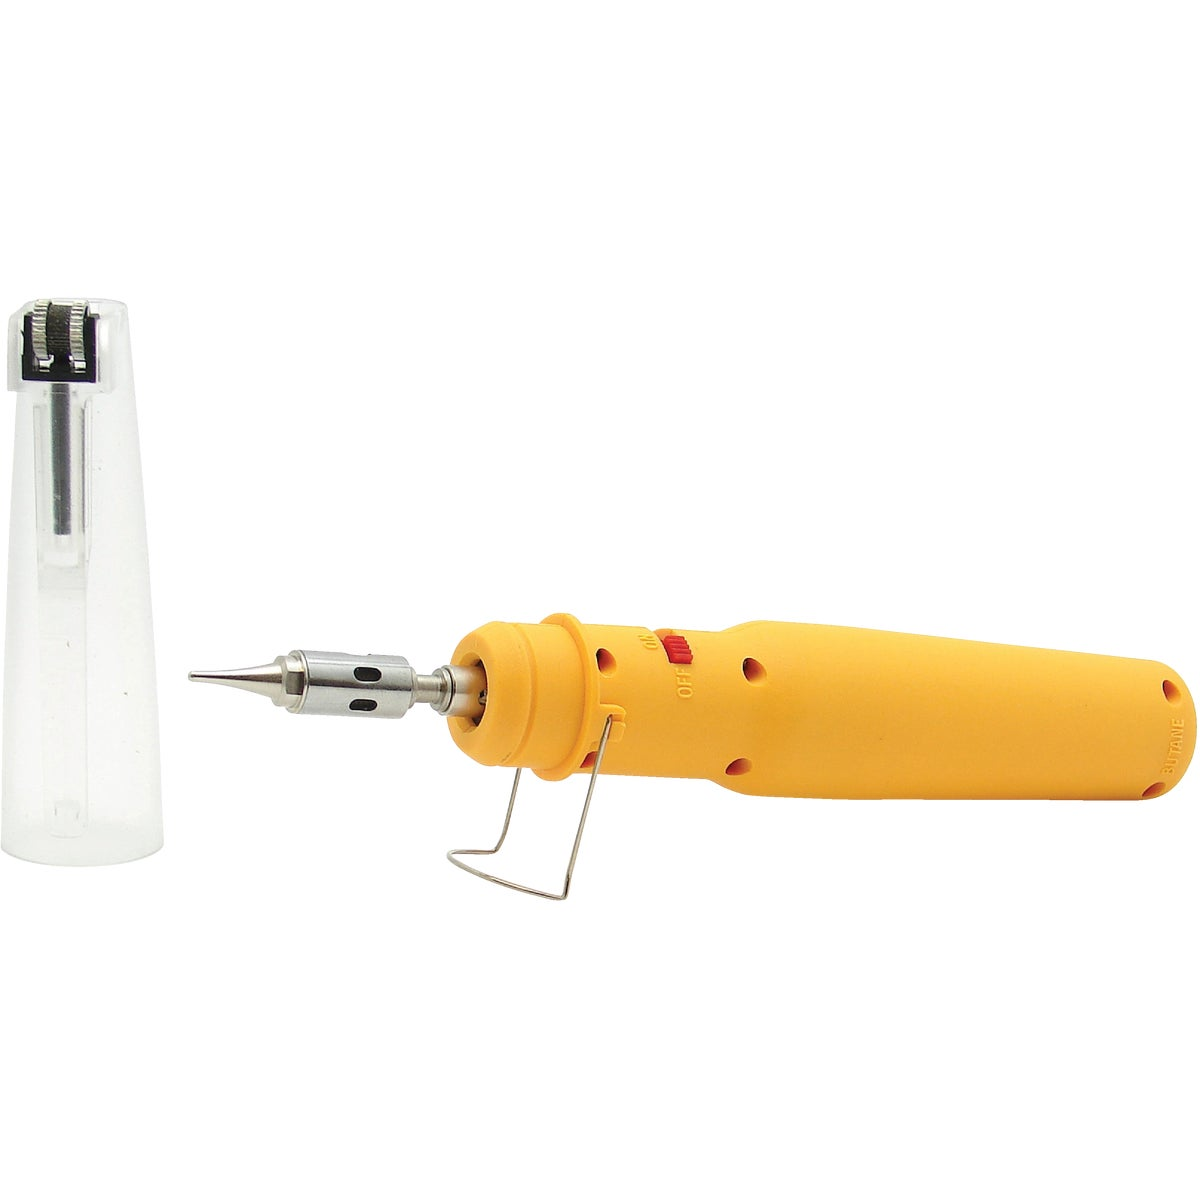 BUTANE SOLDERING IRON - LSP-60-1 by Wall Lenk Corp